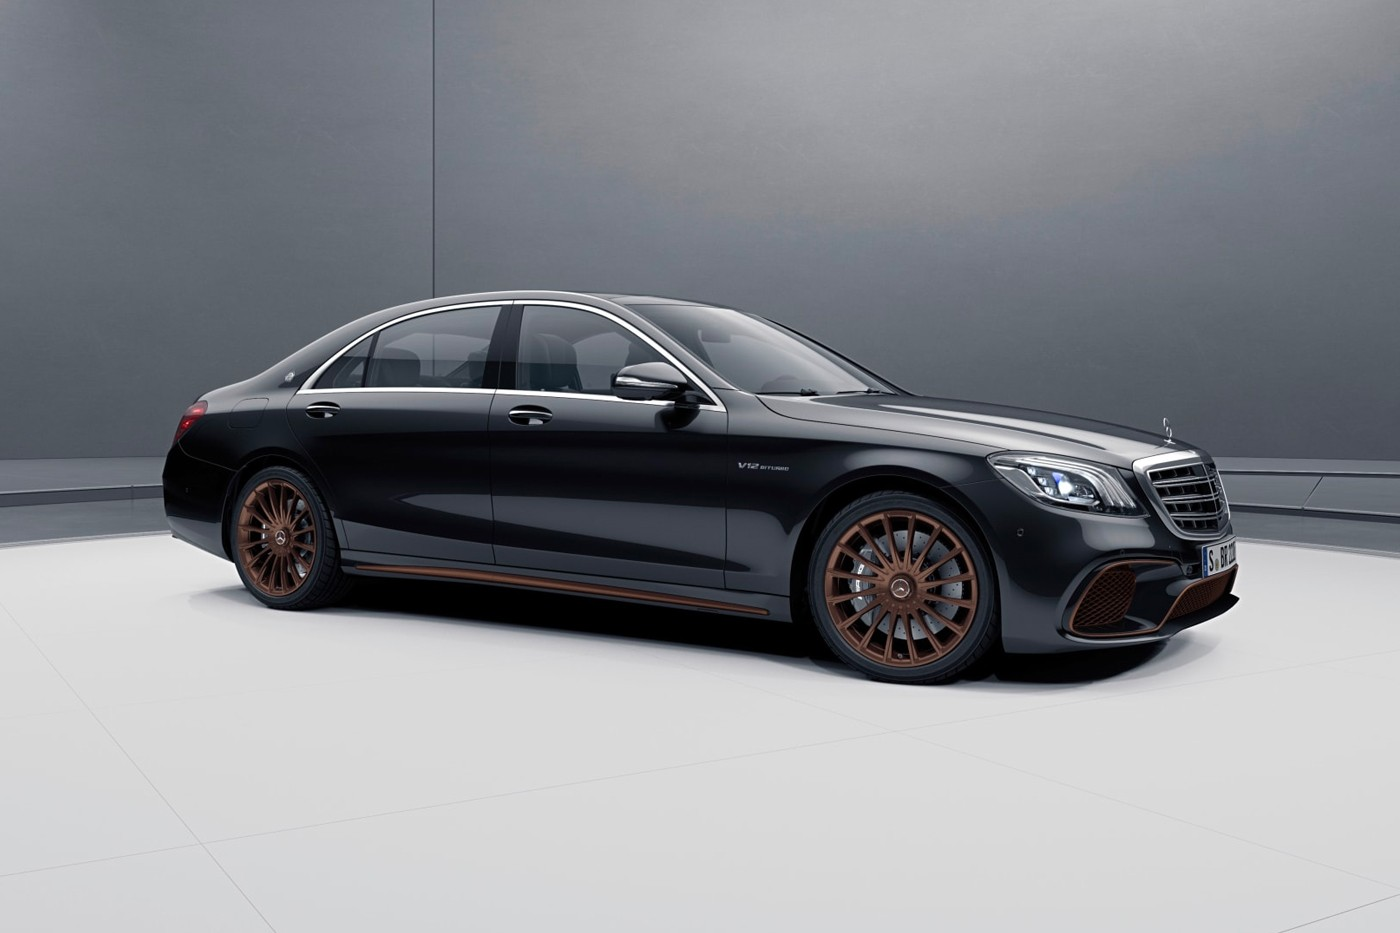 """mercedes amg s65 s class \""""final edition\"""" release hypebeastmercedes amg s65 s class final edition release german car engineering driving motorsport"""